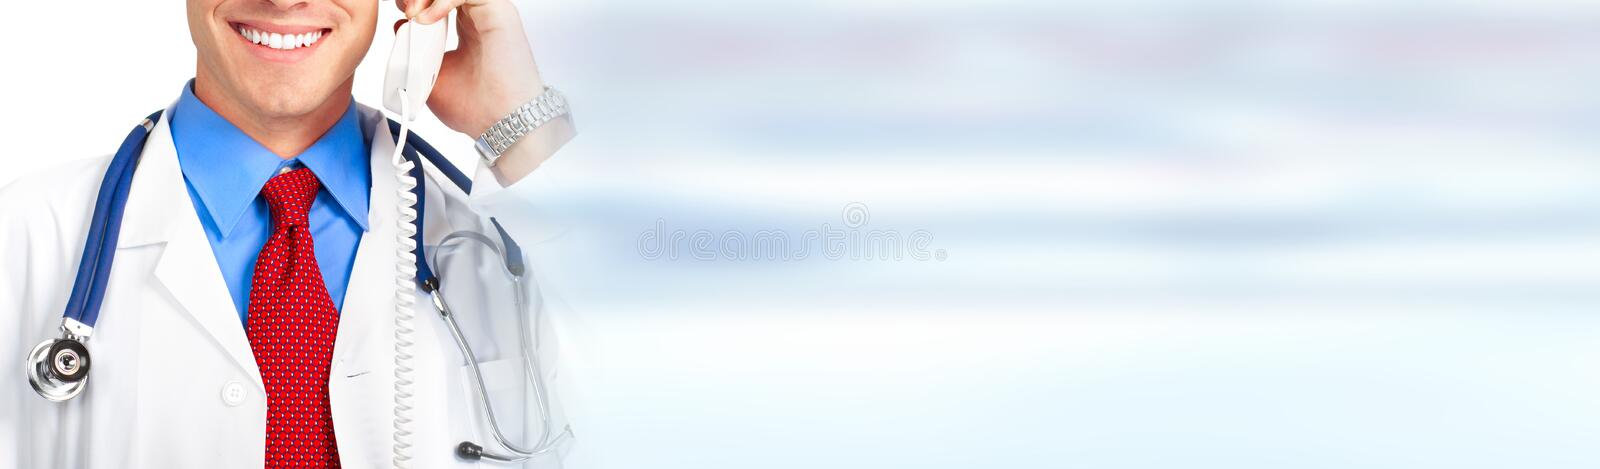 Doctor calling by phone. Young smiling doctor with phone on blue medical clinic background royalty free stock photos